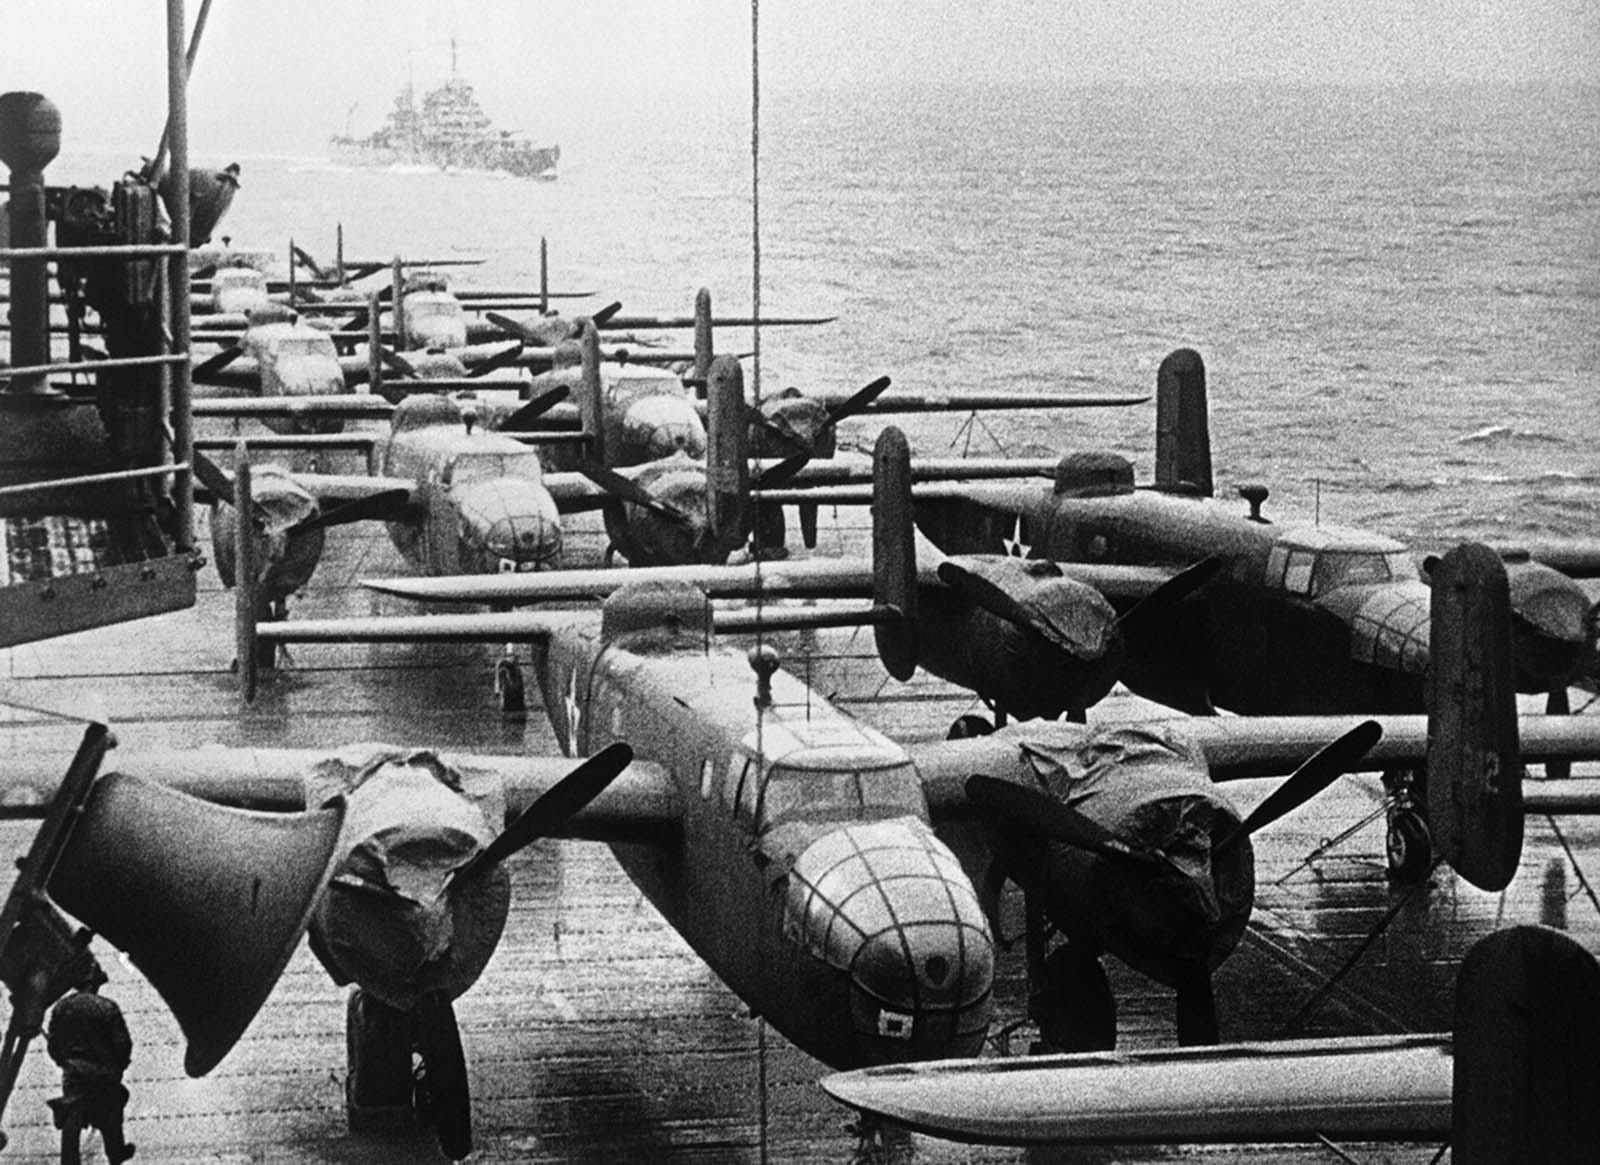 American B-25B bombers rest on the flight deck of the USS Hornet, approaching the spot where the planes were launched on their raid on Tokyo, April 13, 1942. Escort ship in left background.